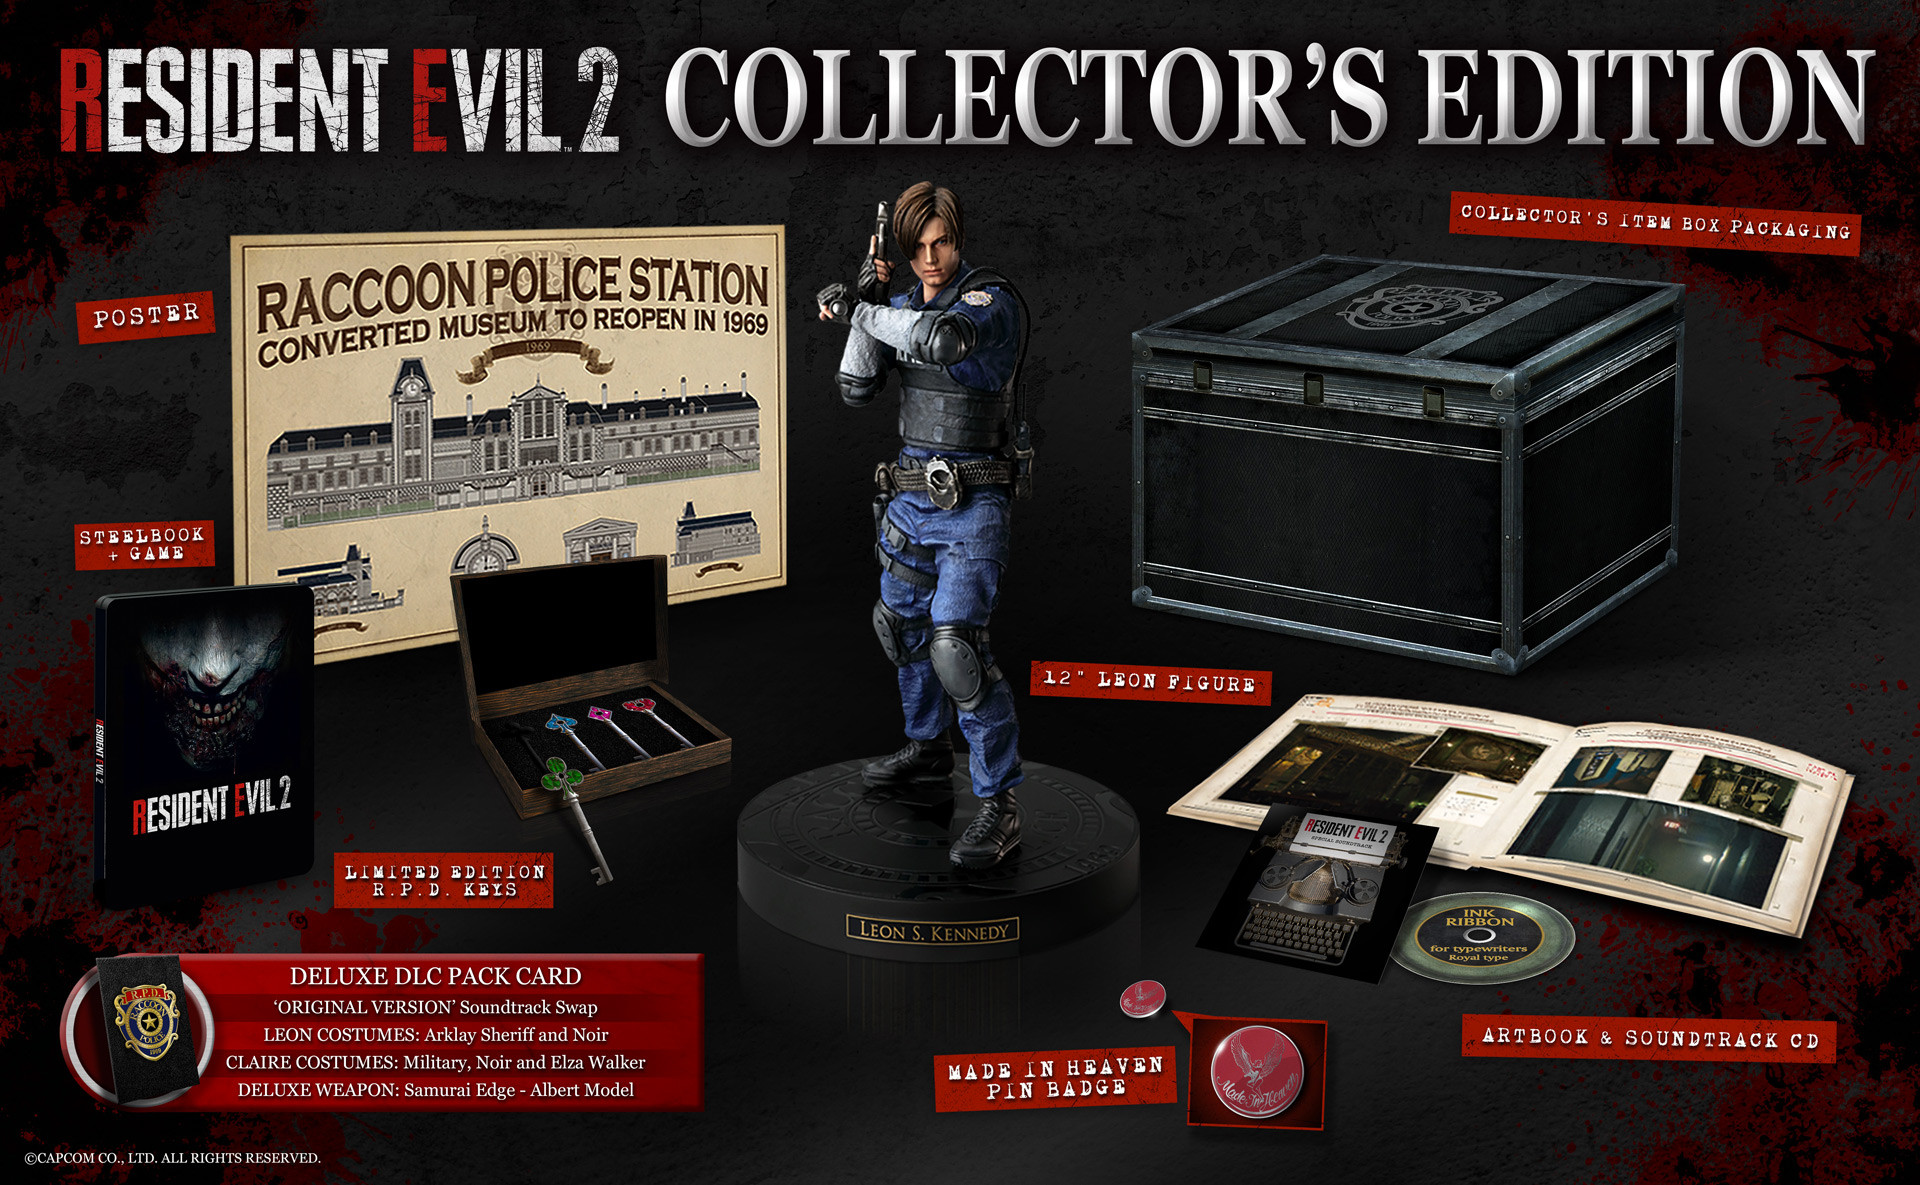 RESIDENT EVIL 2: Collector's Edition